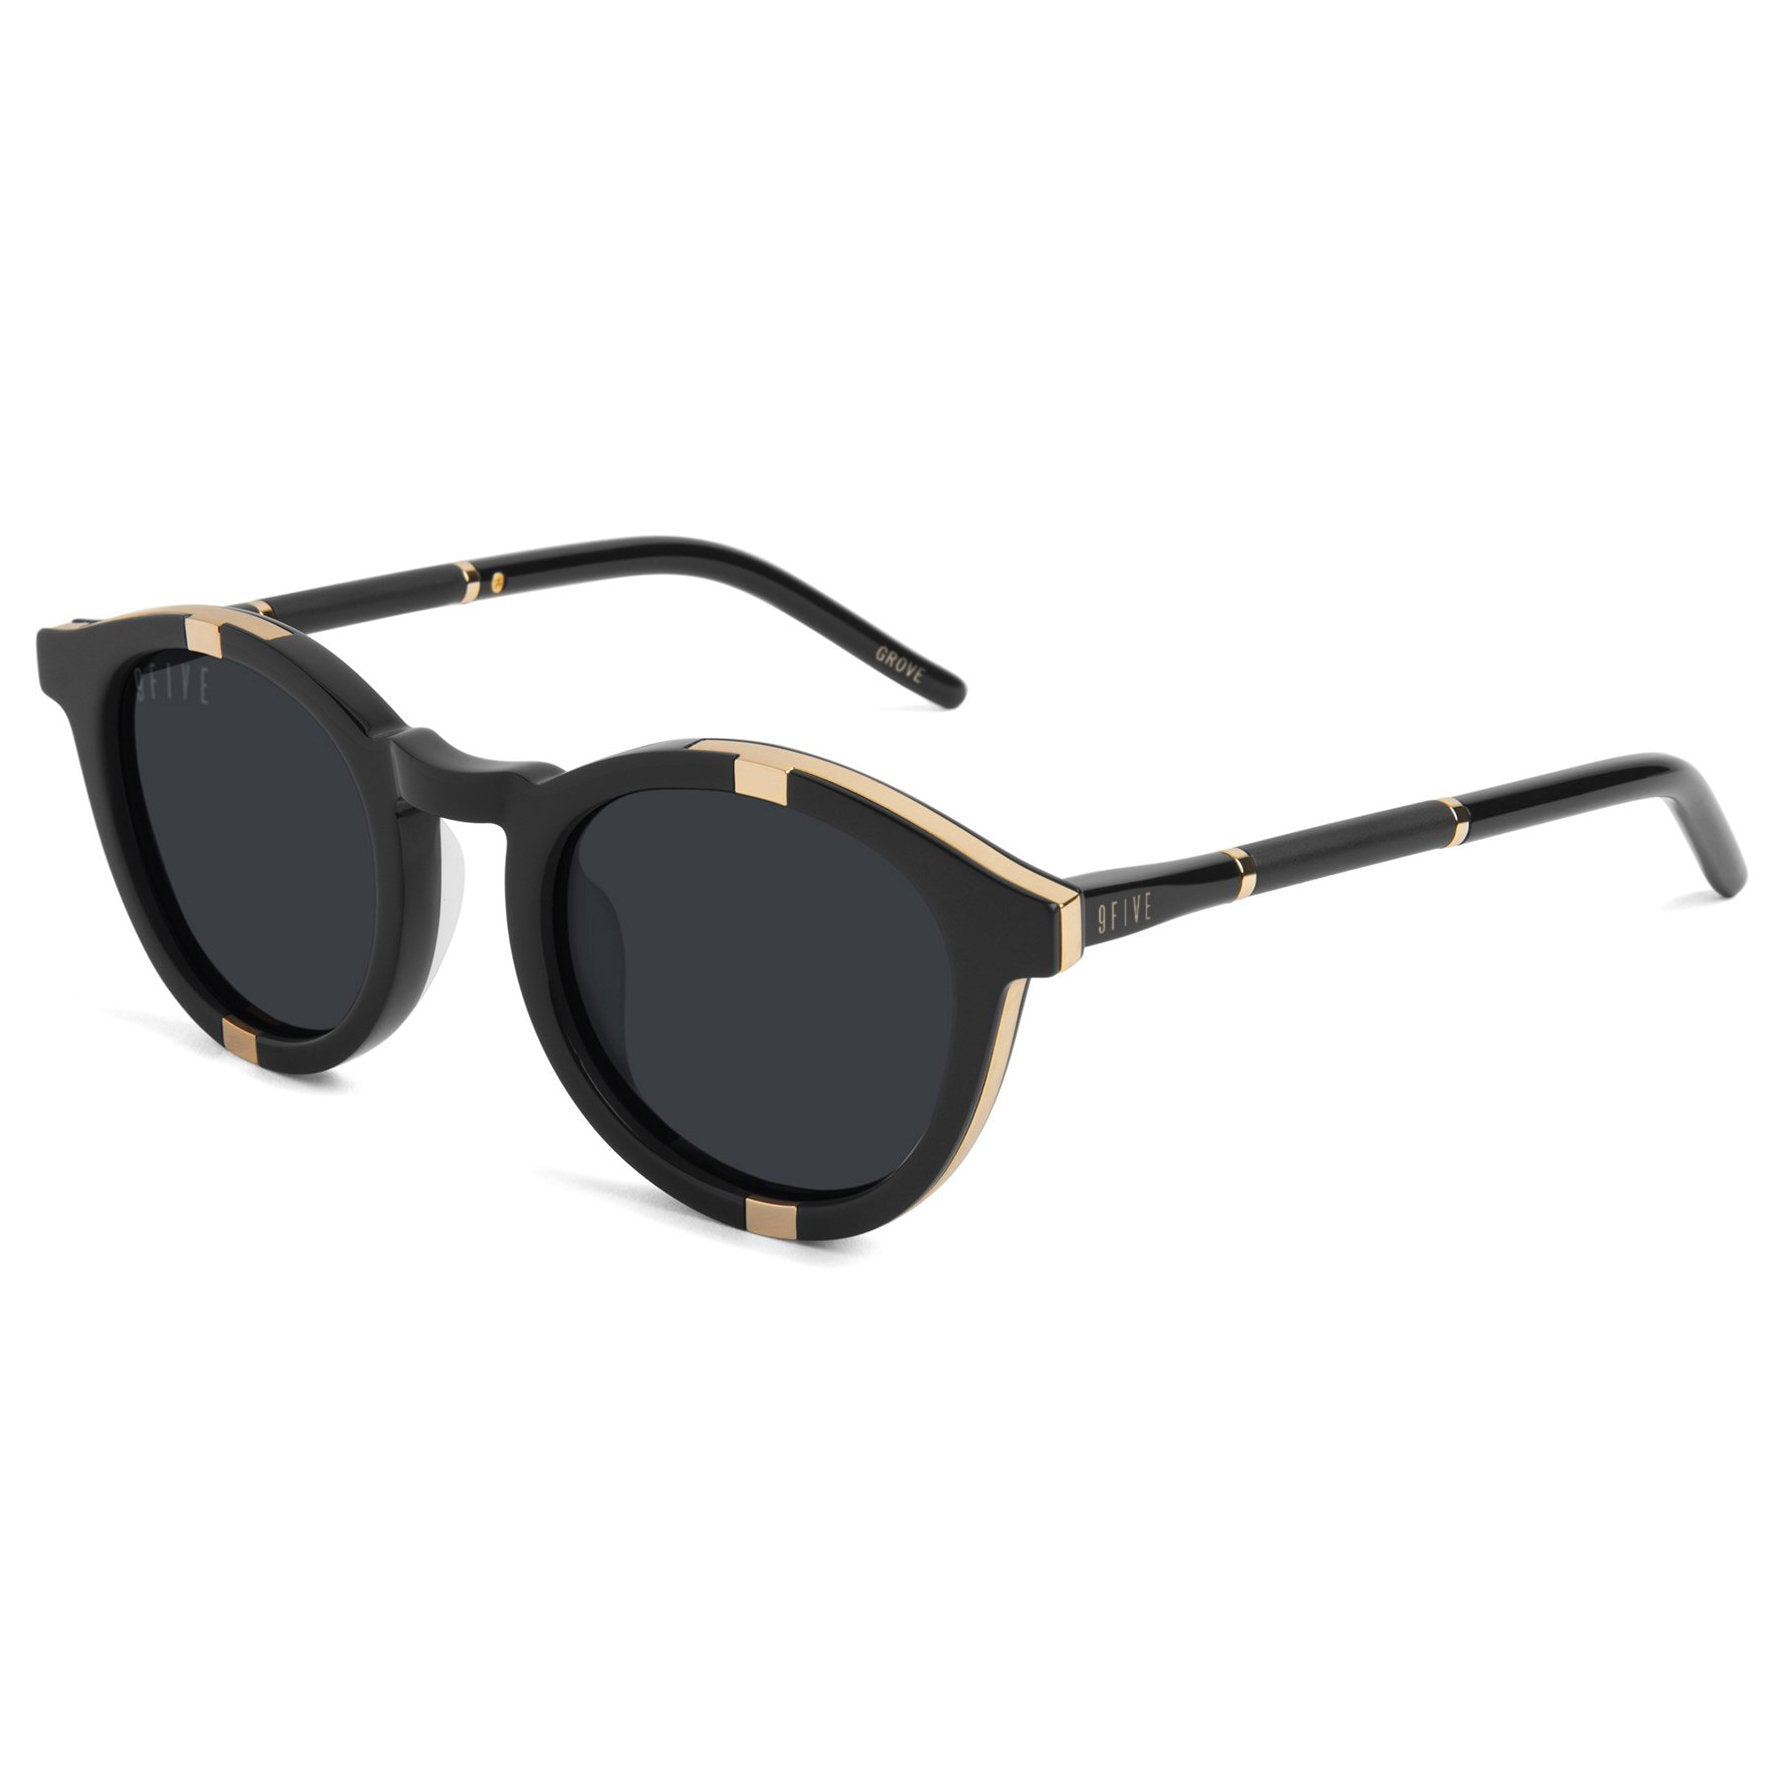 9FIVE GROVE SUNGLASSES - BLACK/GOLD